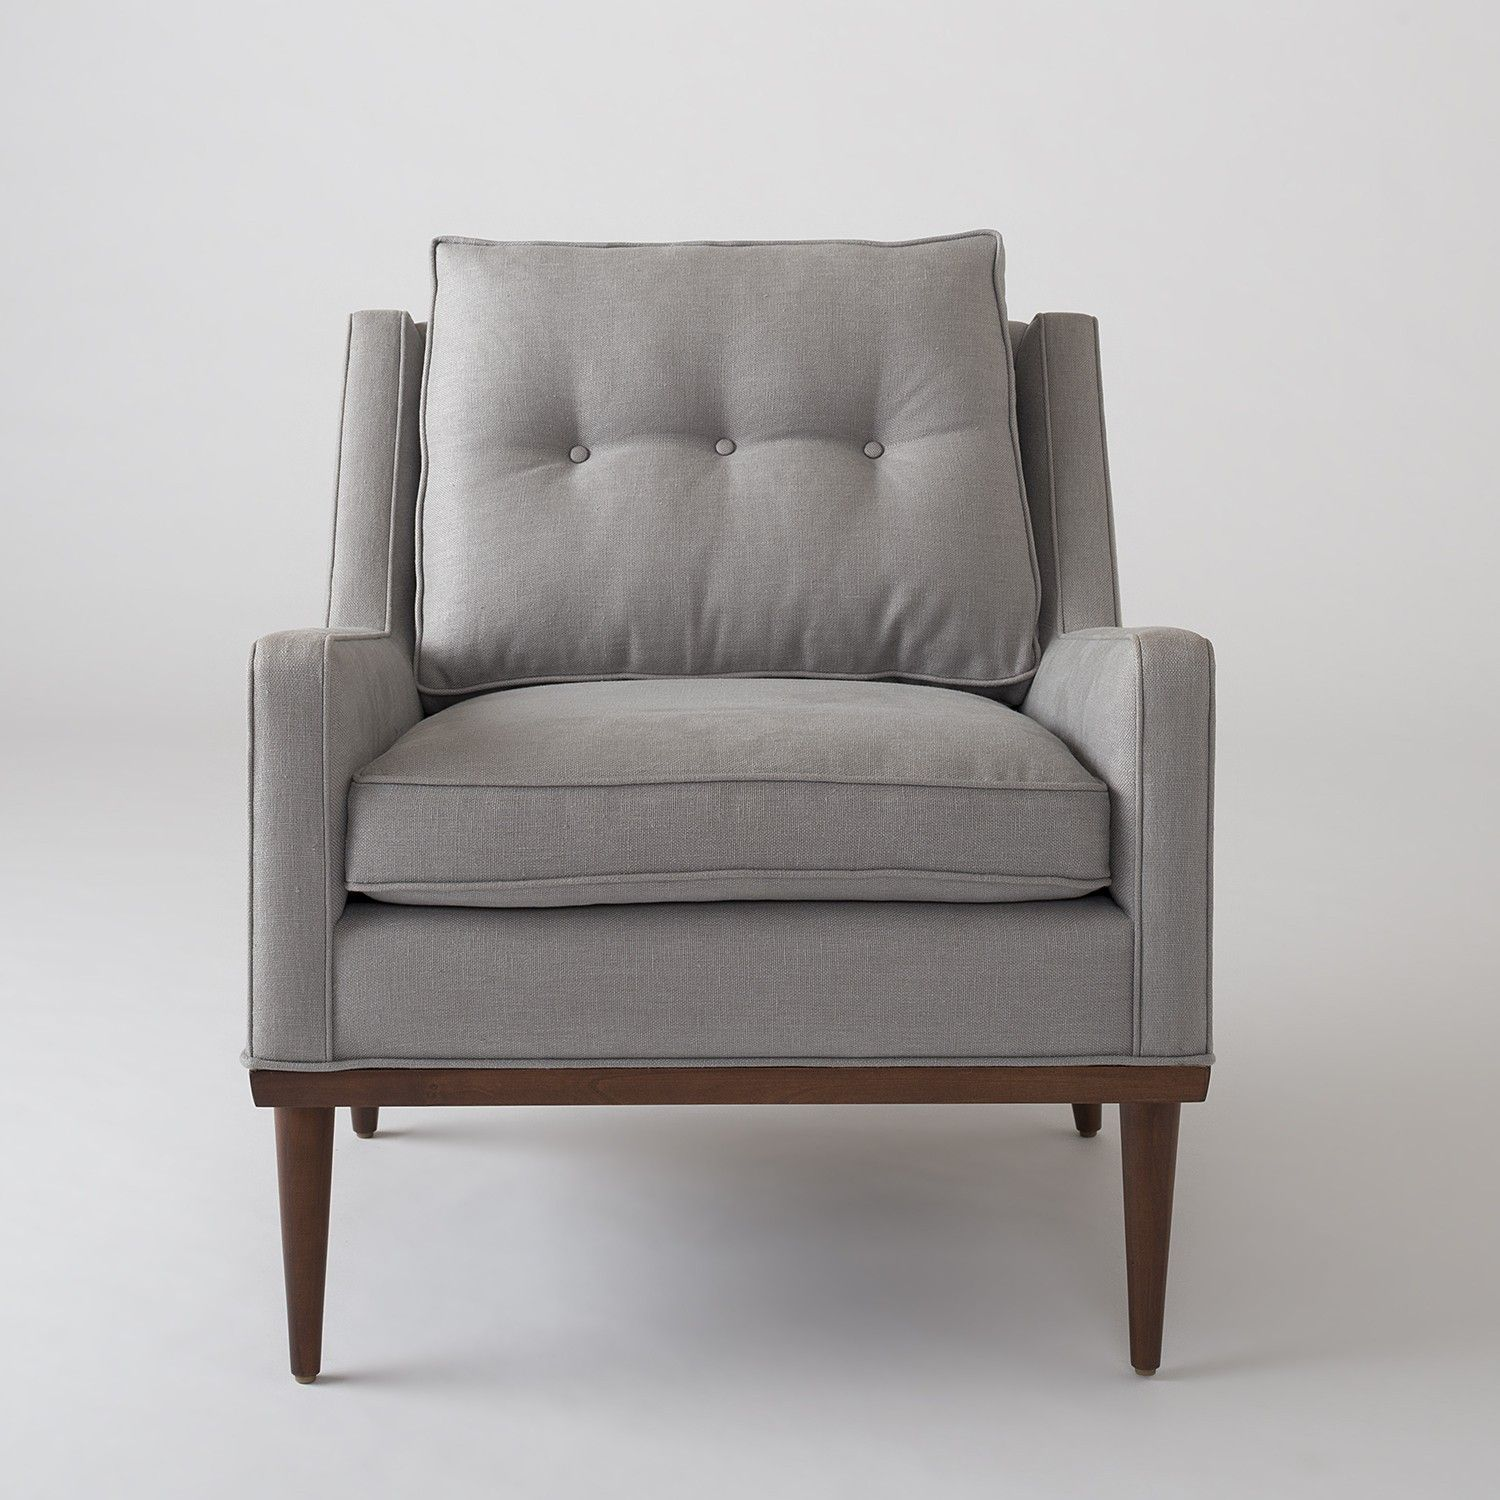 Jack chair bristol gray linen upholstery hardwood legs tufted cushion midcentury inspired made in the usa